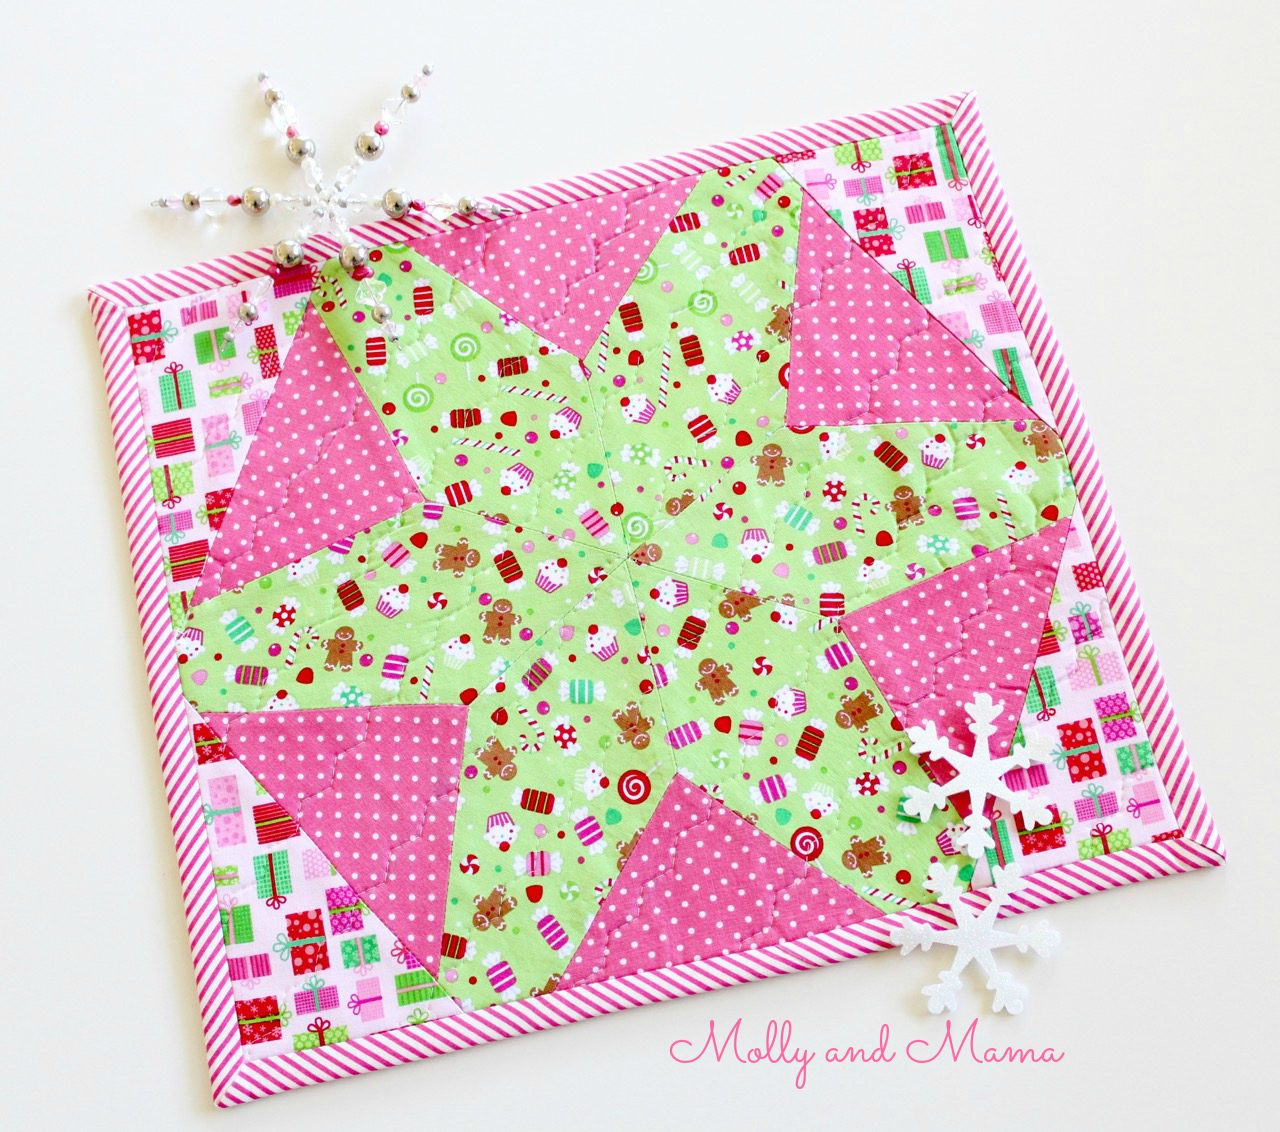 quilted Christmas placemat by Molly and Mama